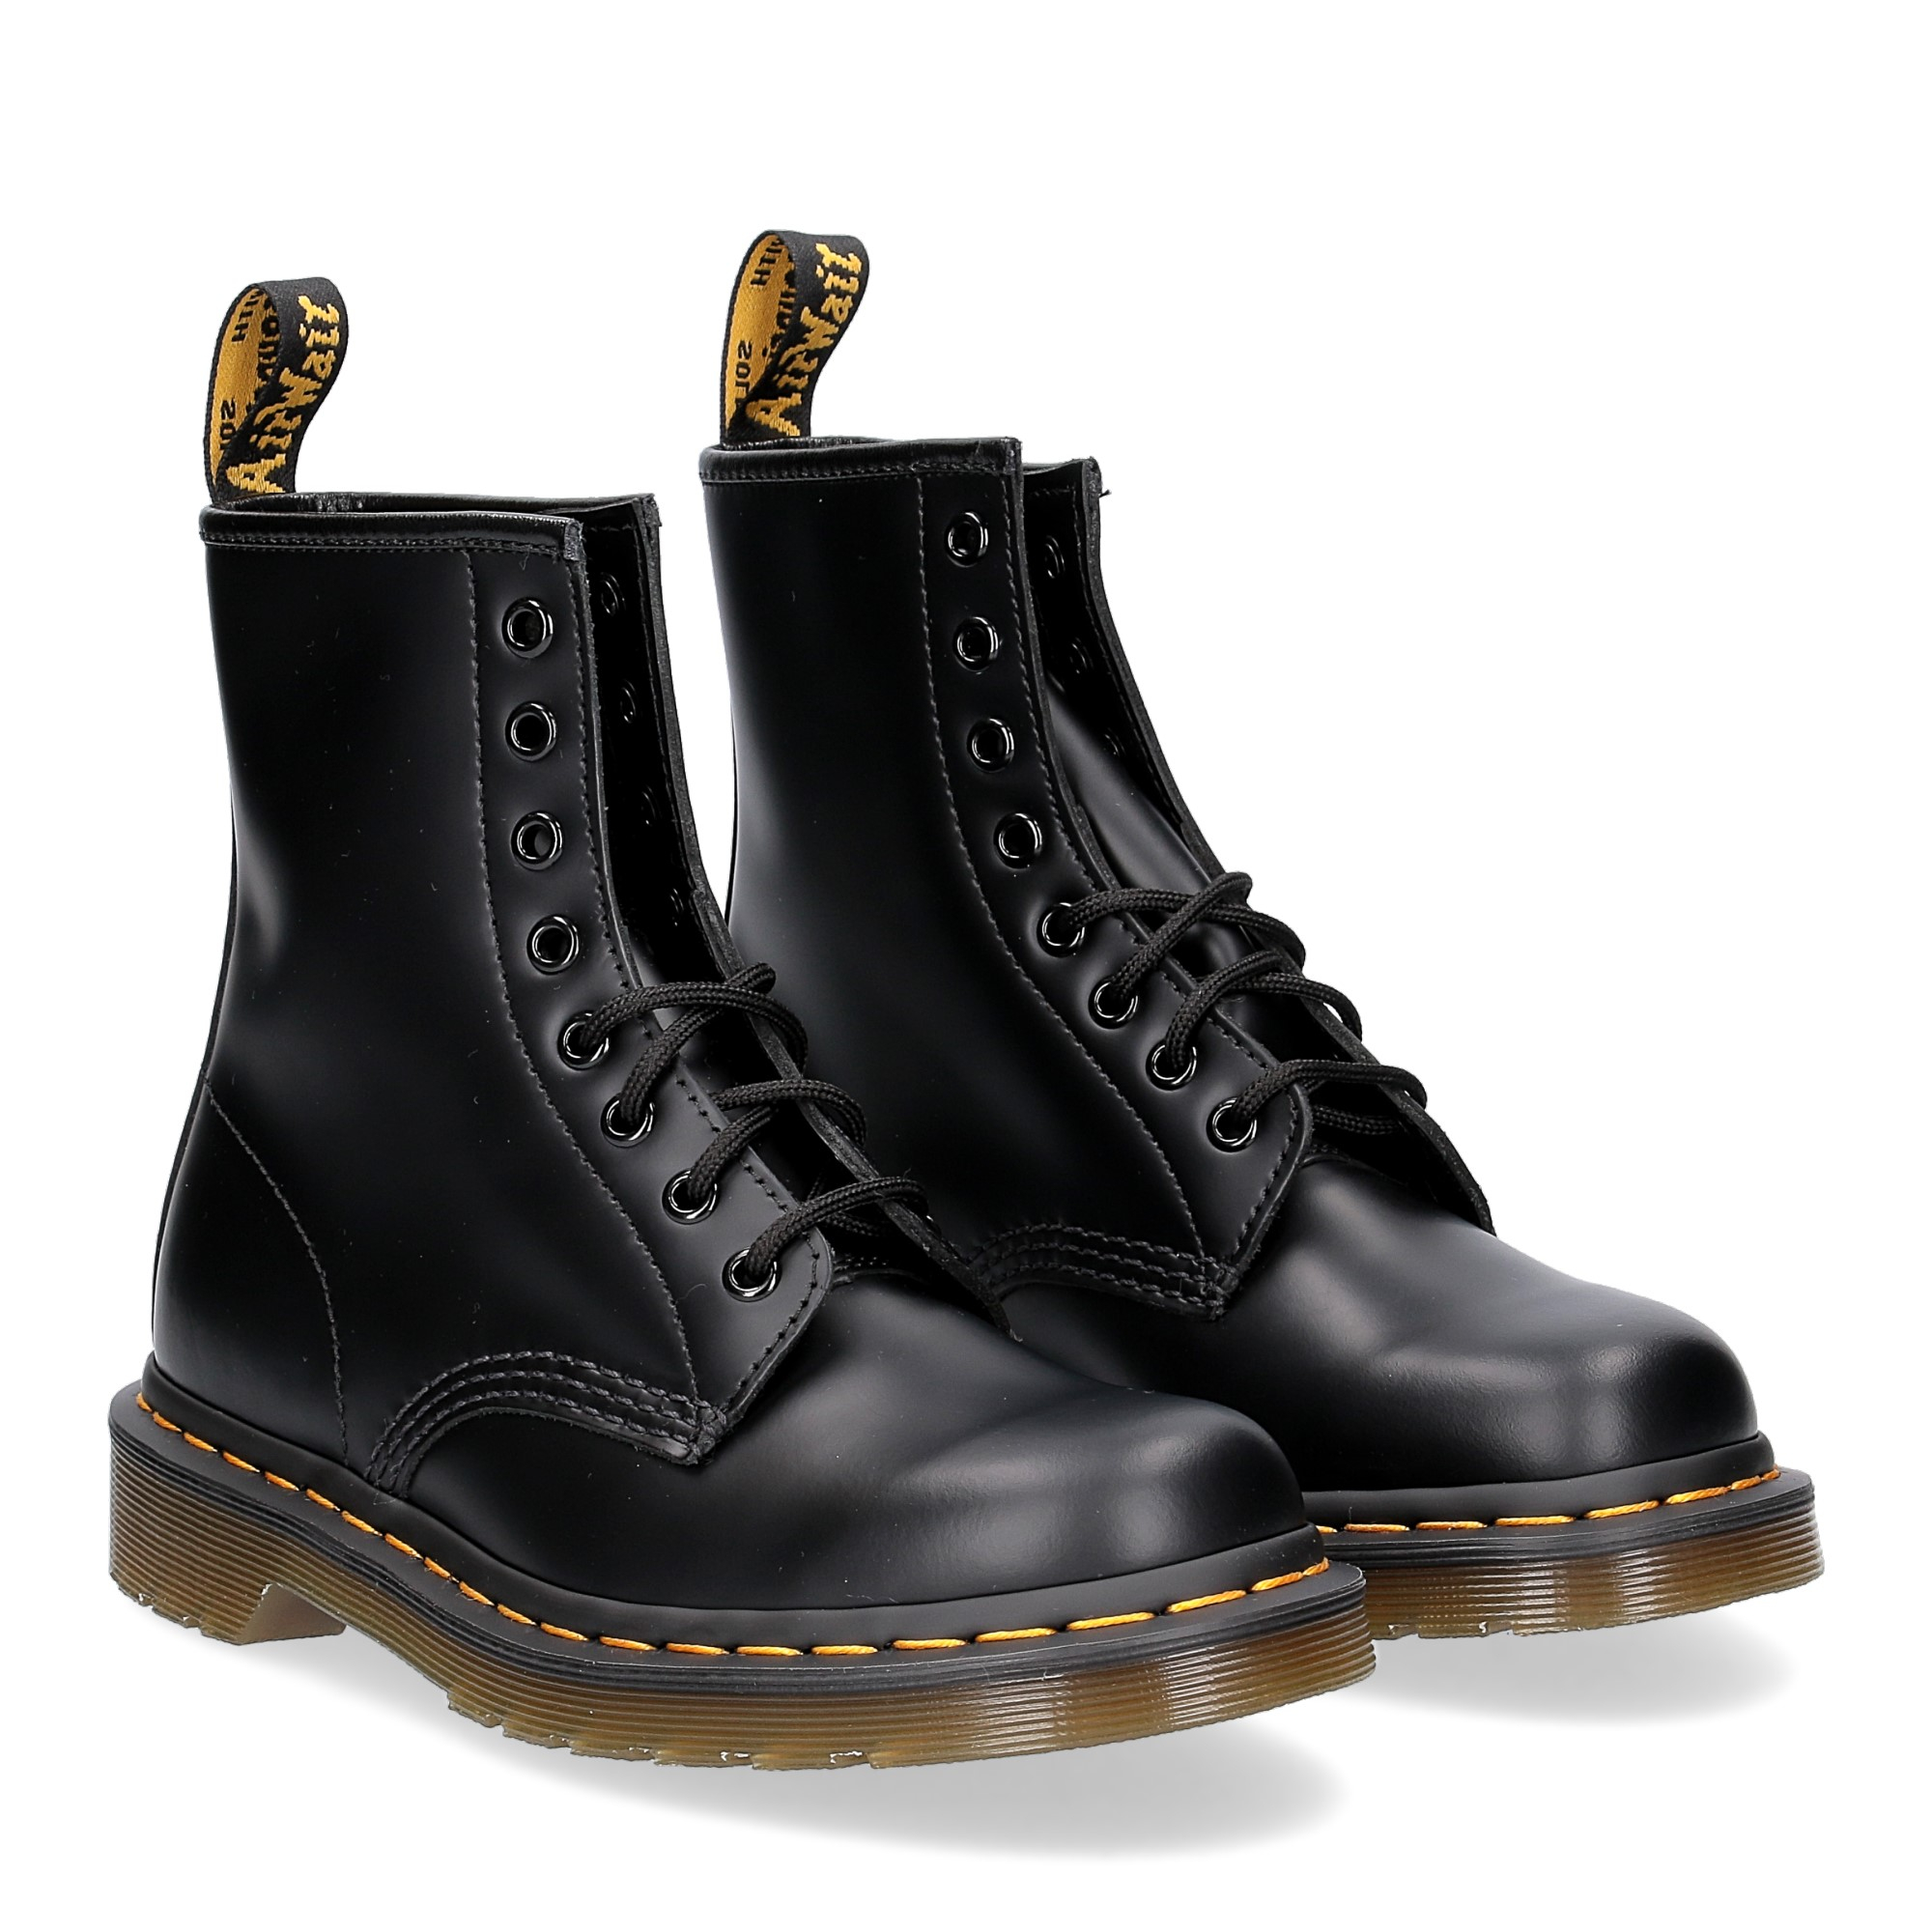 Dr. Martens Anfibio Uomo 1460 black smooth